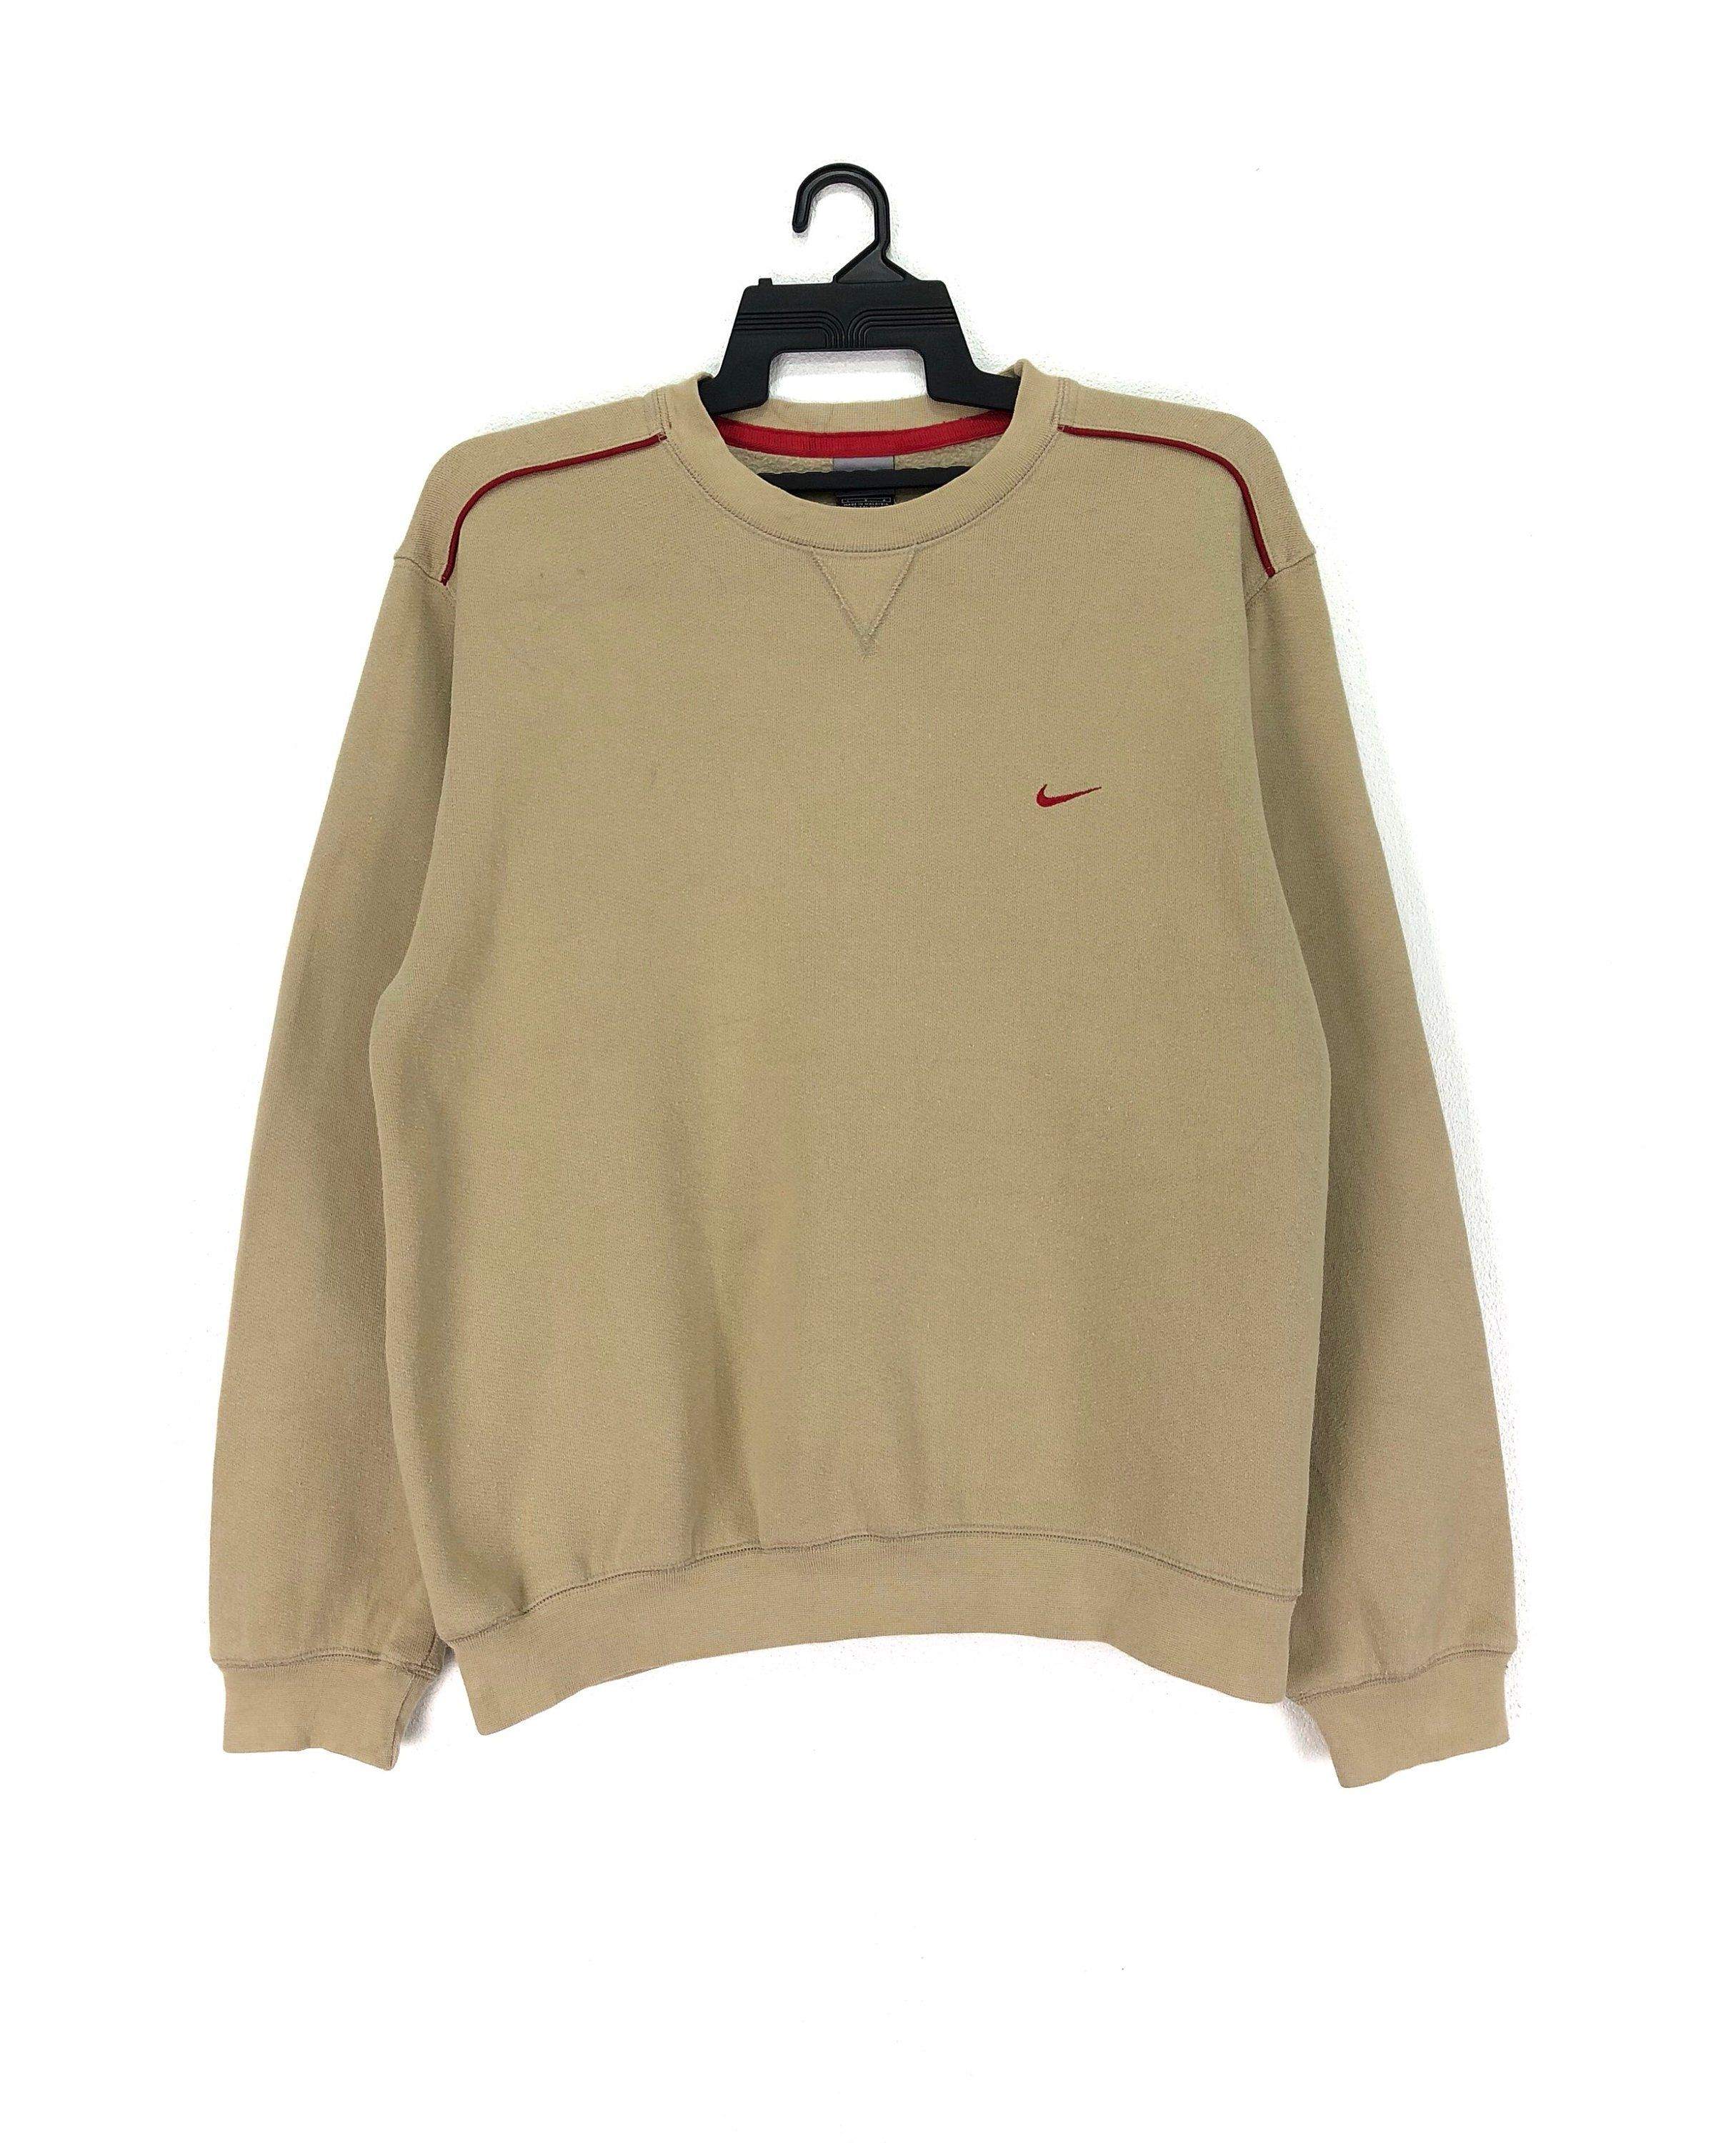 Vintage Nike Sweatshirt Crewneck Jumpers Embroidered Small  db3a63a34f6